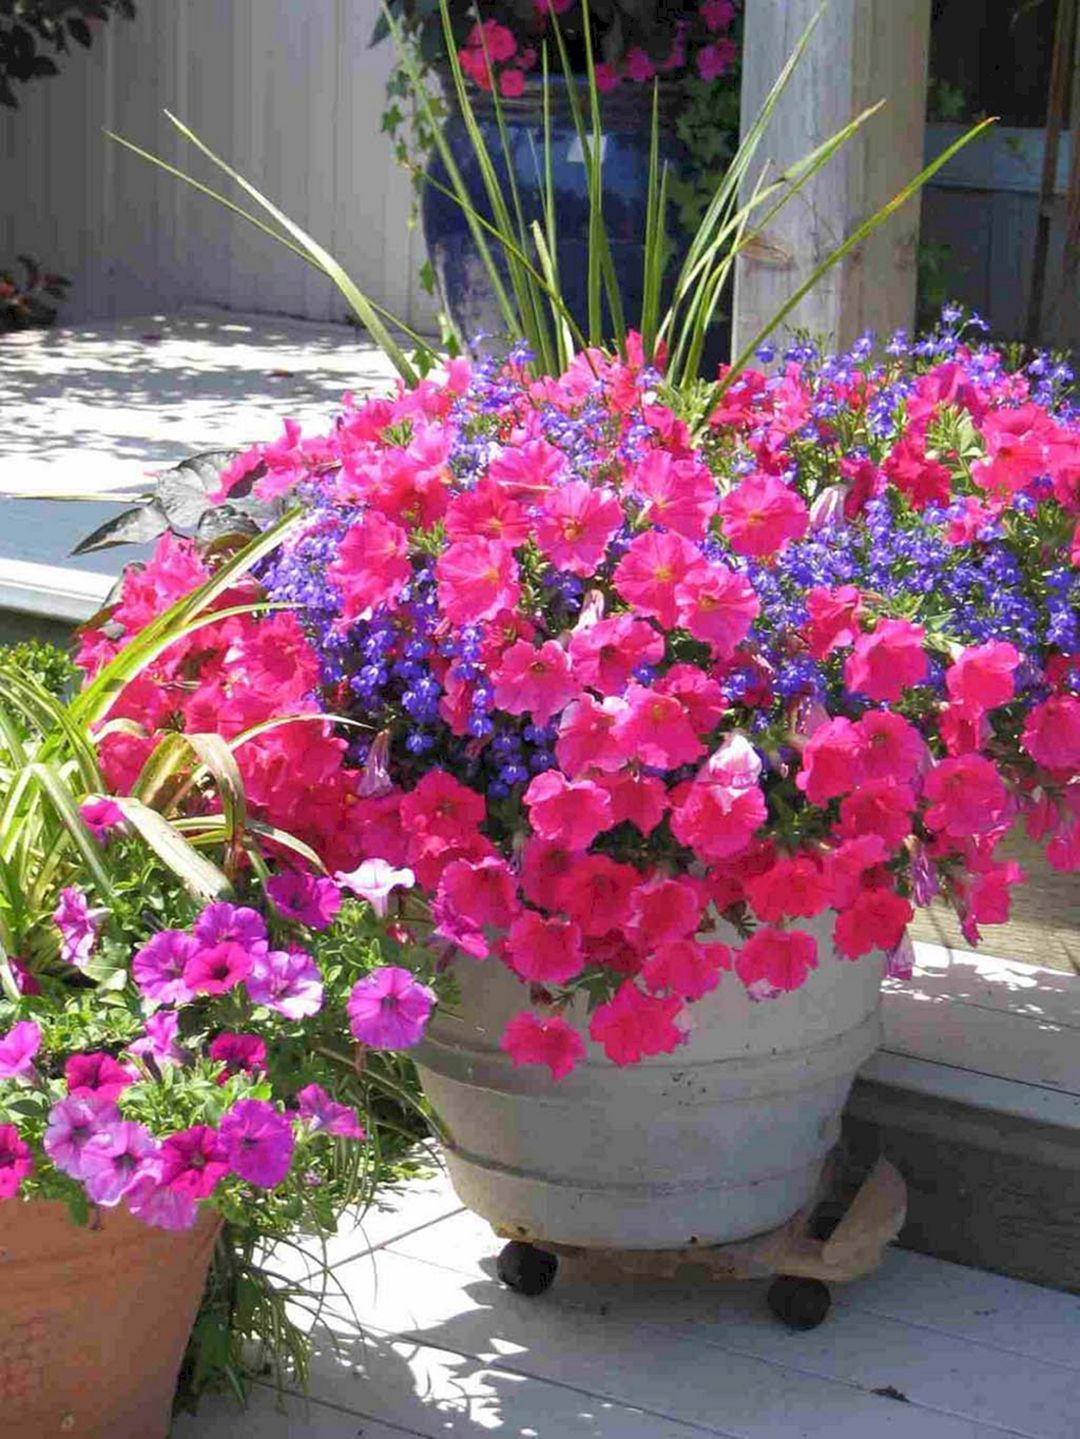 Dig A Hole Larger Enough To Easily Accommodate The Roots And Enrich It With Organic Matter Container Gardening Flowers Container Garden Design Container Plants